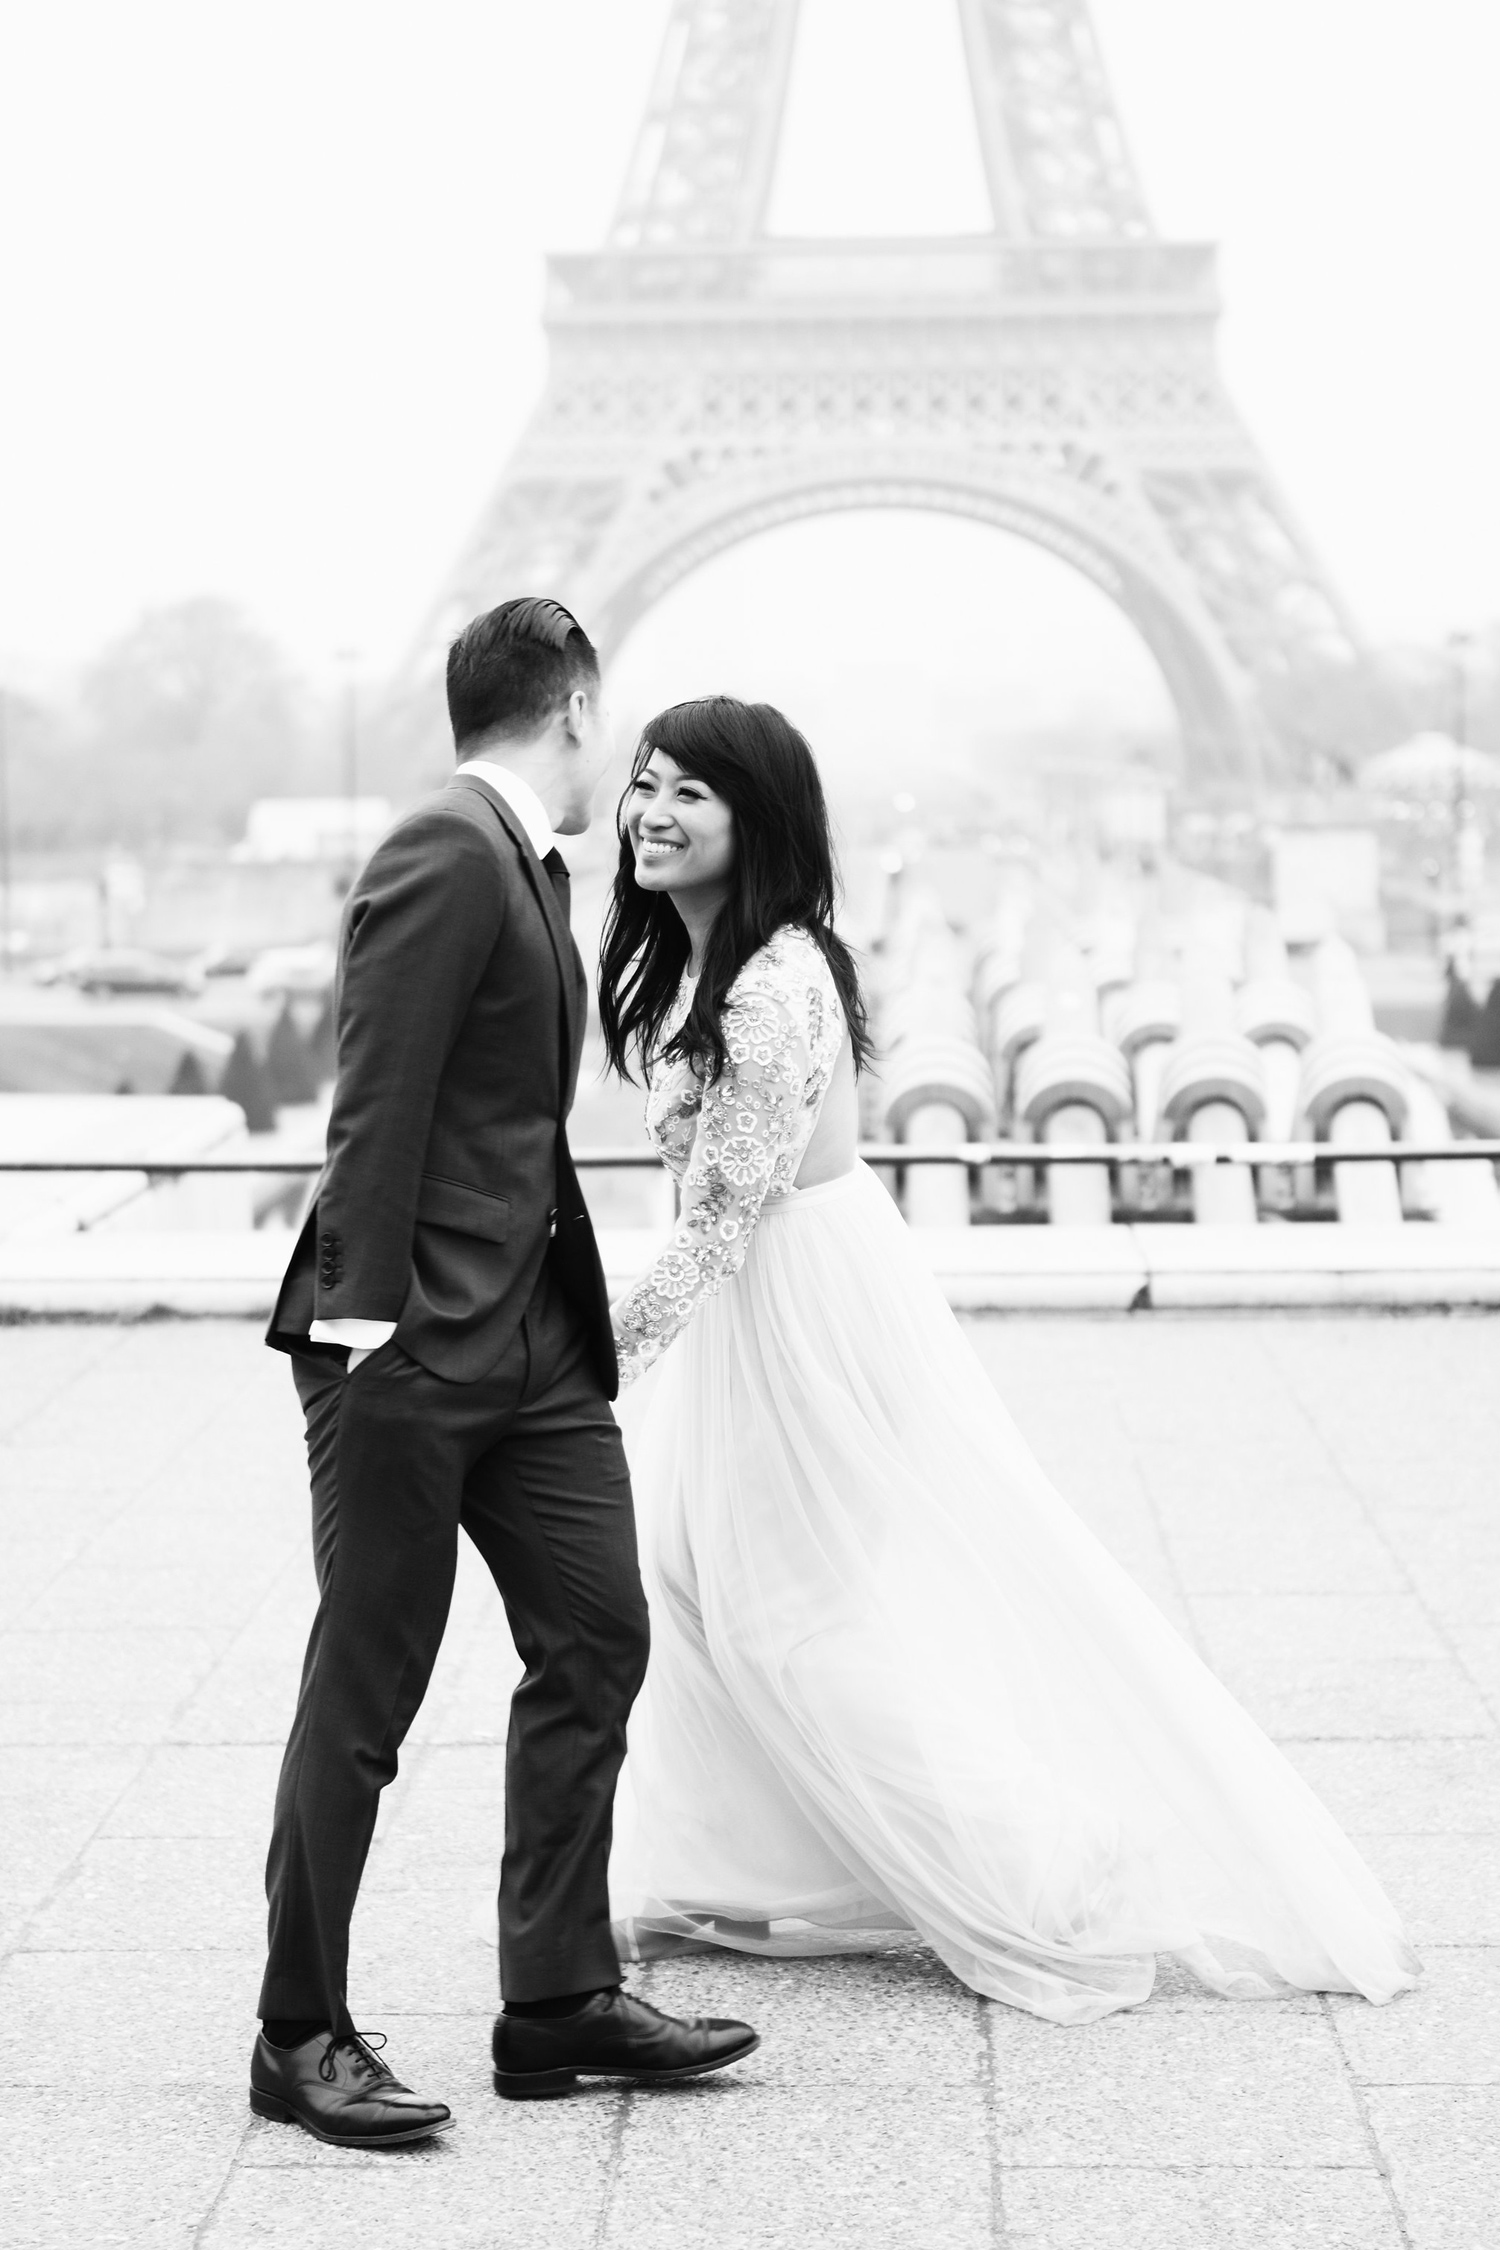 007-paris-engagement-shoot-english-speaking-photographer-katie-mitchell.jpg